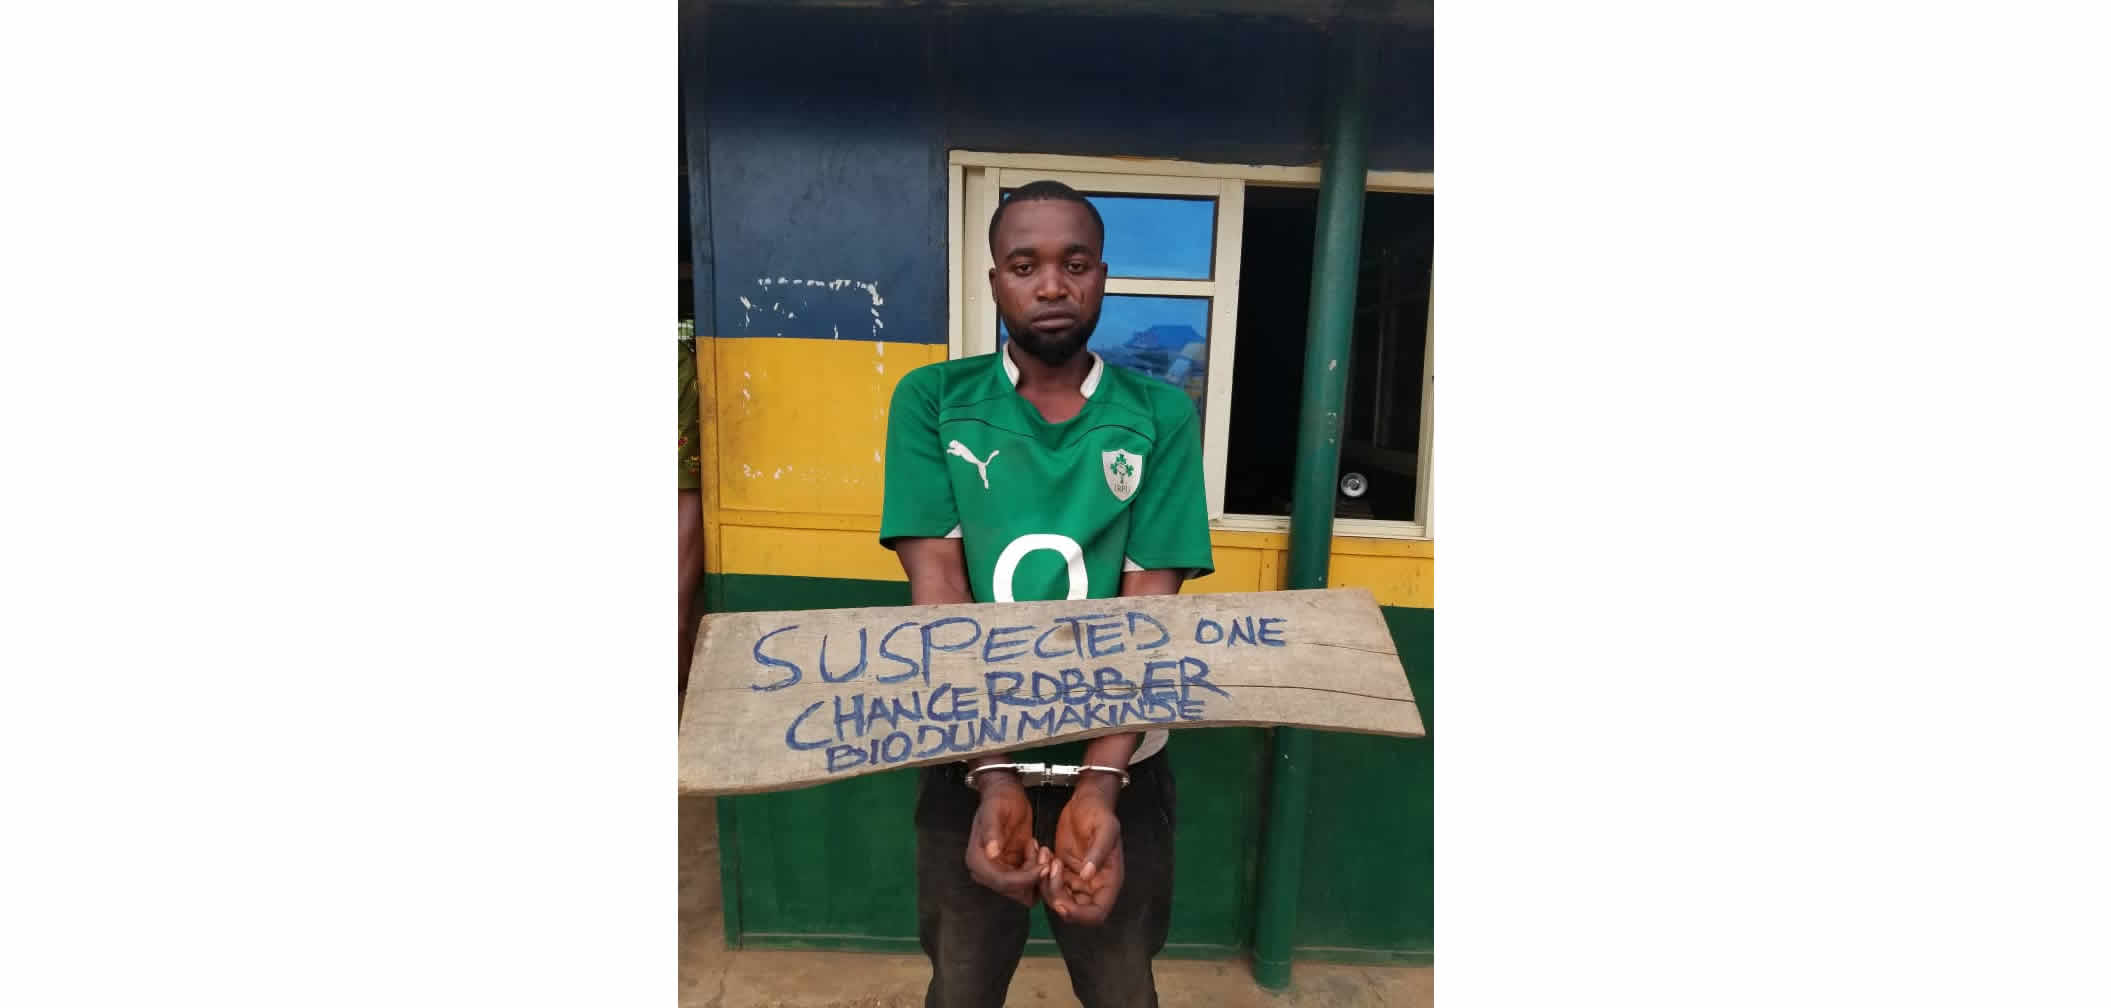 One-chance robber arrested in Ogun